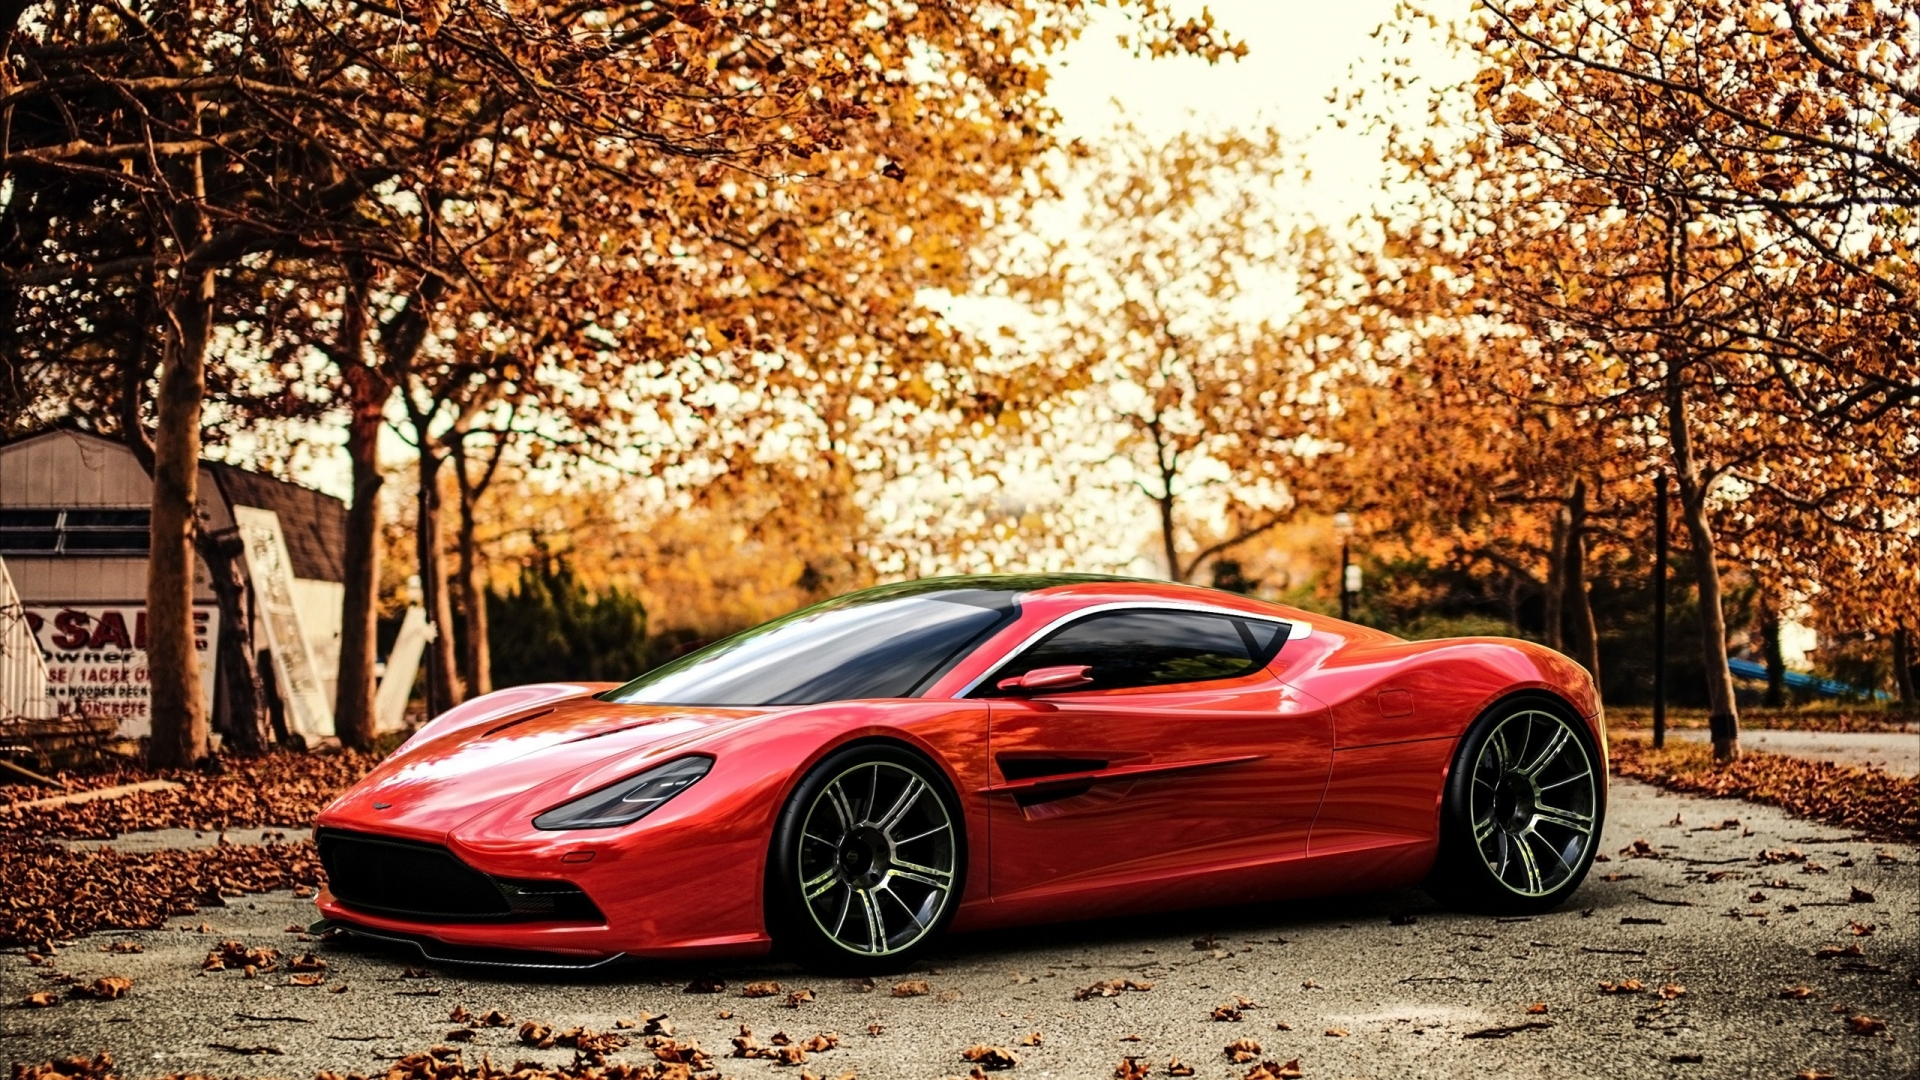 Aston Martin DBC Concept for 1920 x 1080 HDTV 1080p resolution